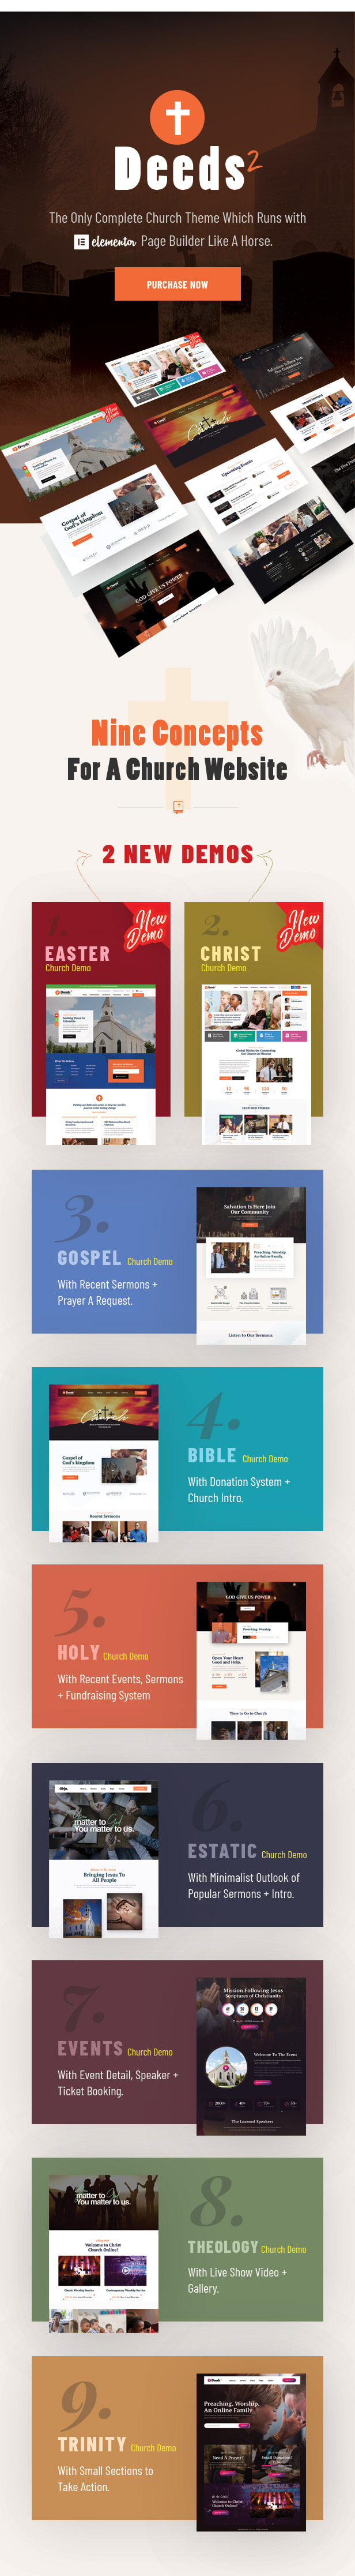 Deeds2 - Religion and Church WordPress Theme - 2